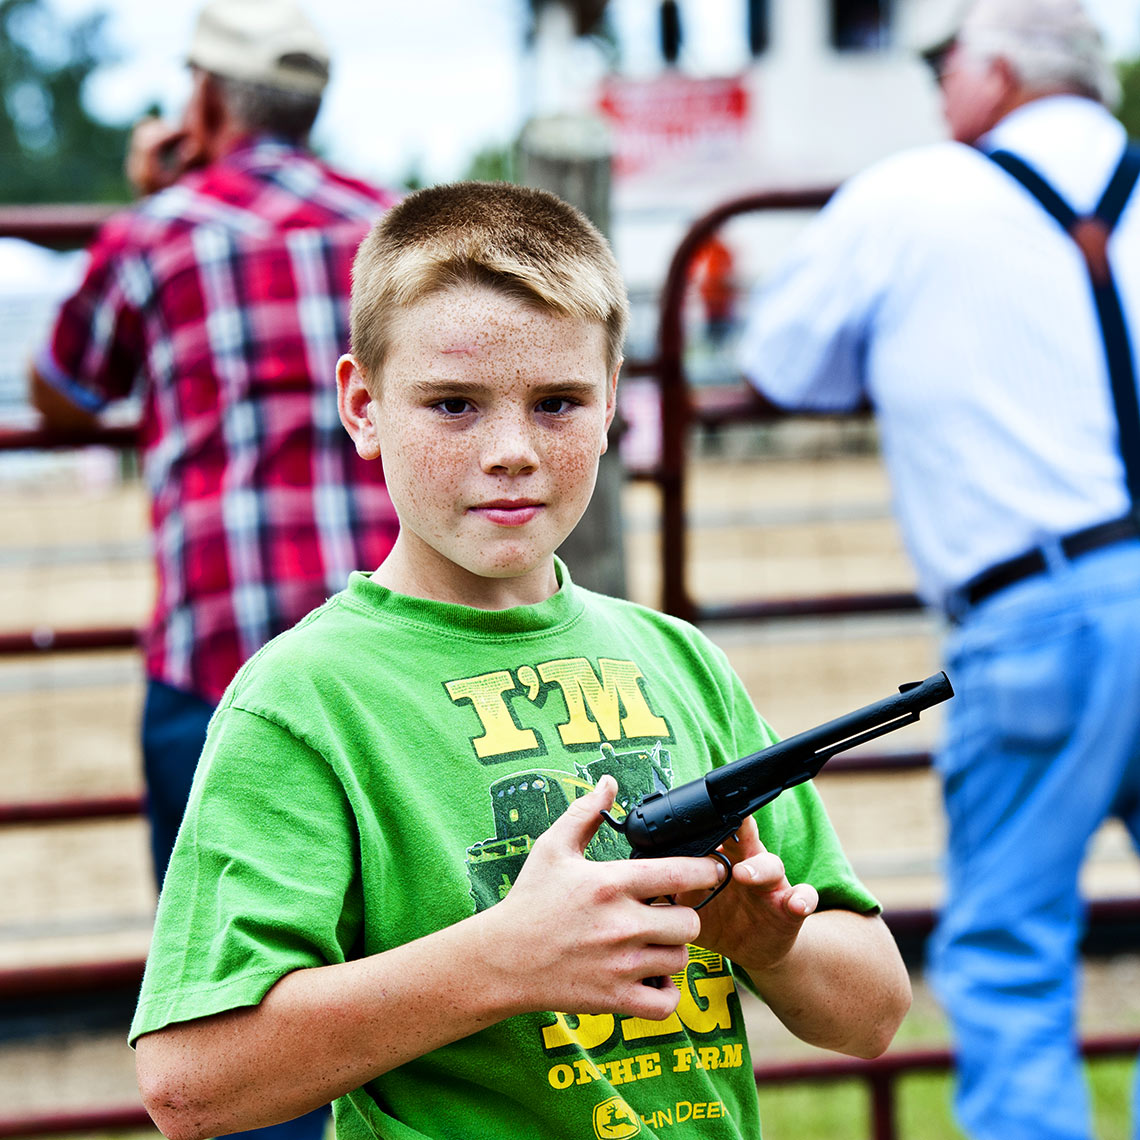 Bryan Regan Raleigh editorial photography Mule days Benson toy gun